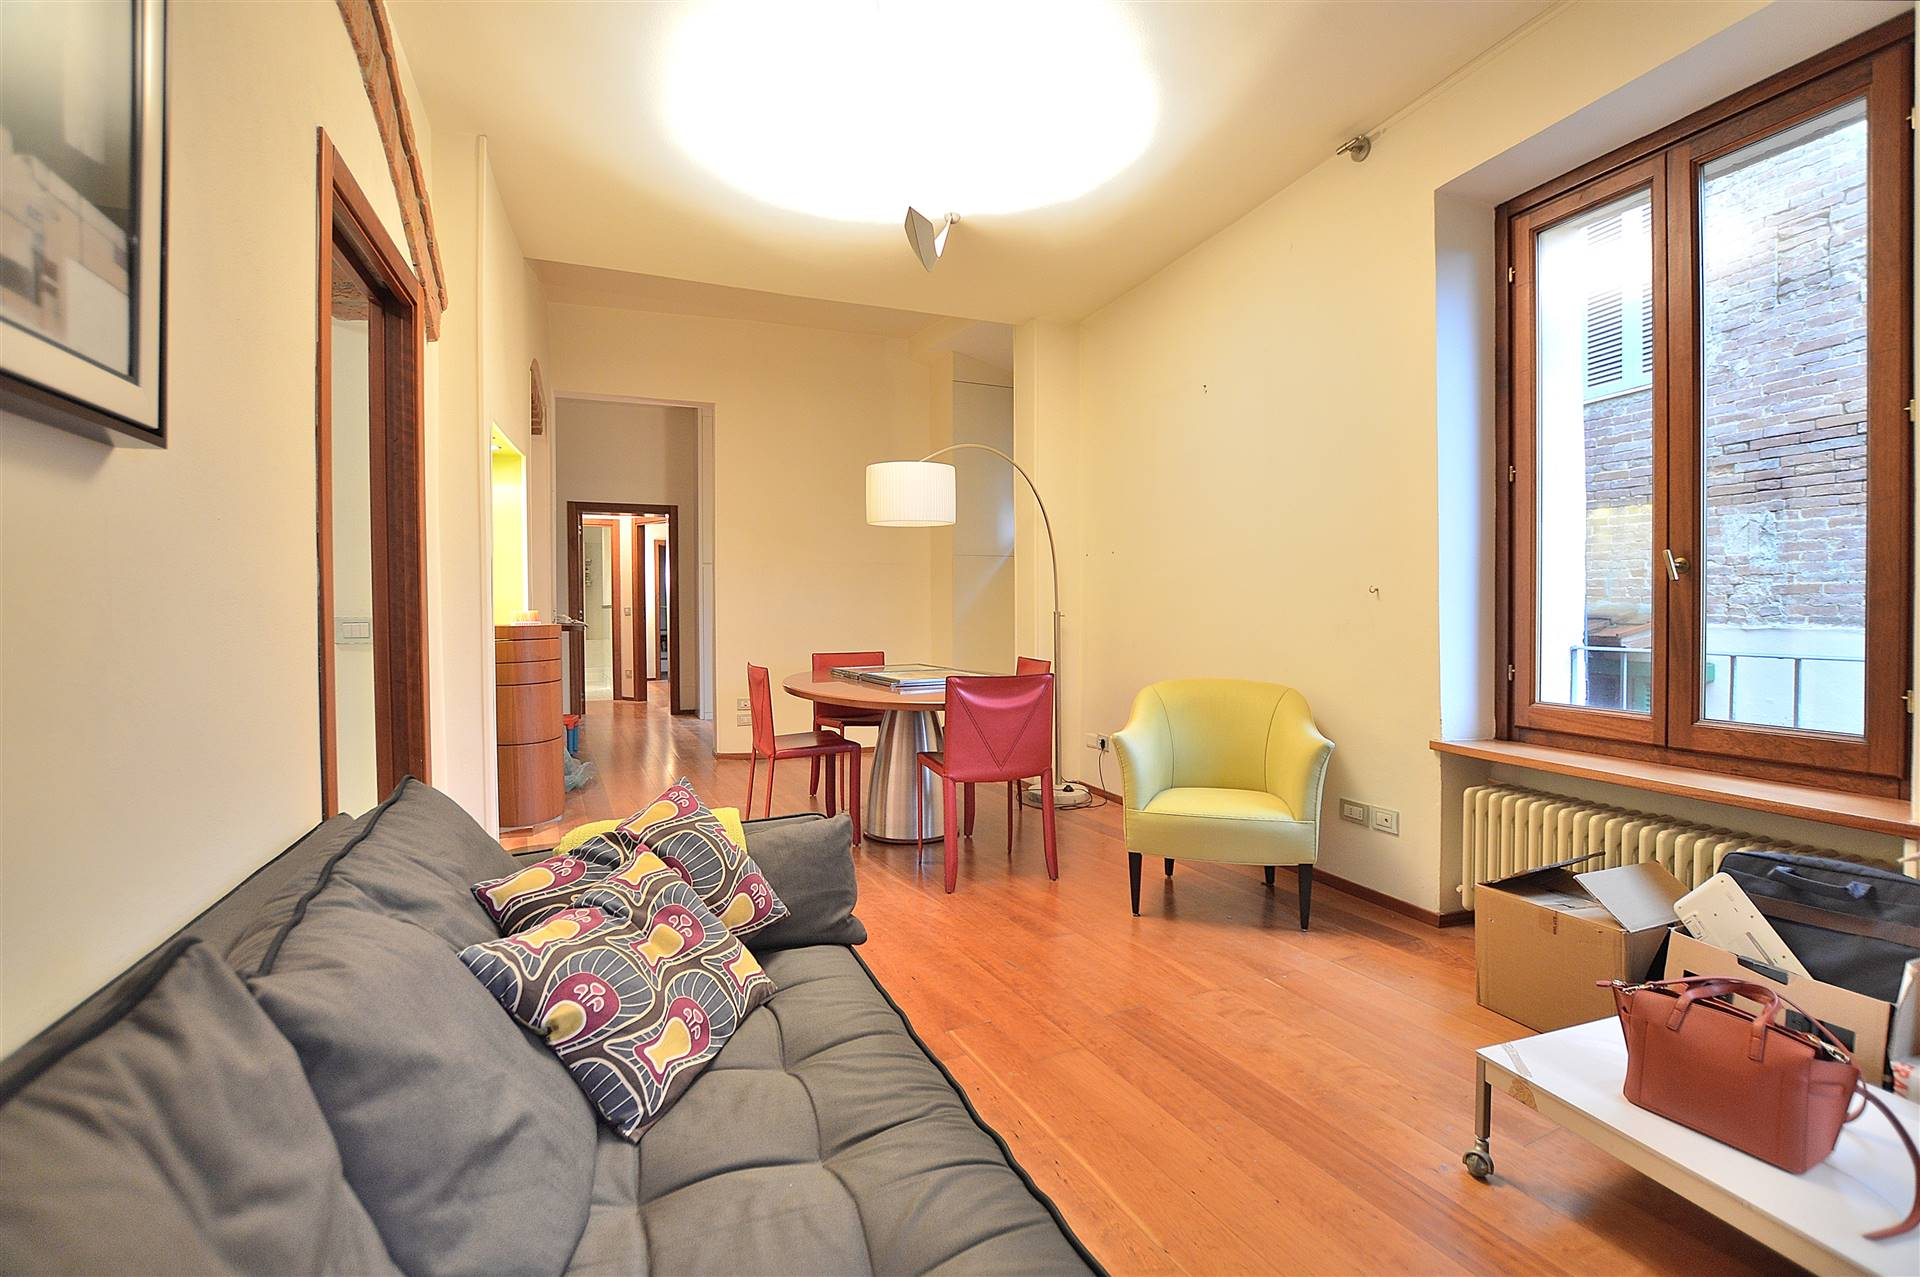 CENTRO STORICO, SIENA, Apartment for sale of 100 Sq. mt., Excellent Condition, Heating Individual heating system, Energetic class: G, Epi: 175 kwh/m2 year, placed at 2° on 3, composed by: 4 Rooms, ,